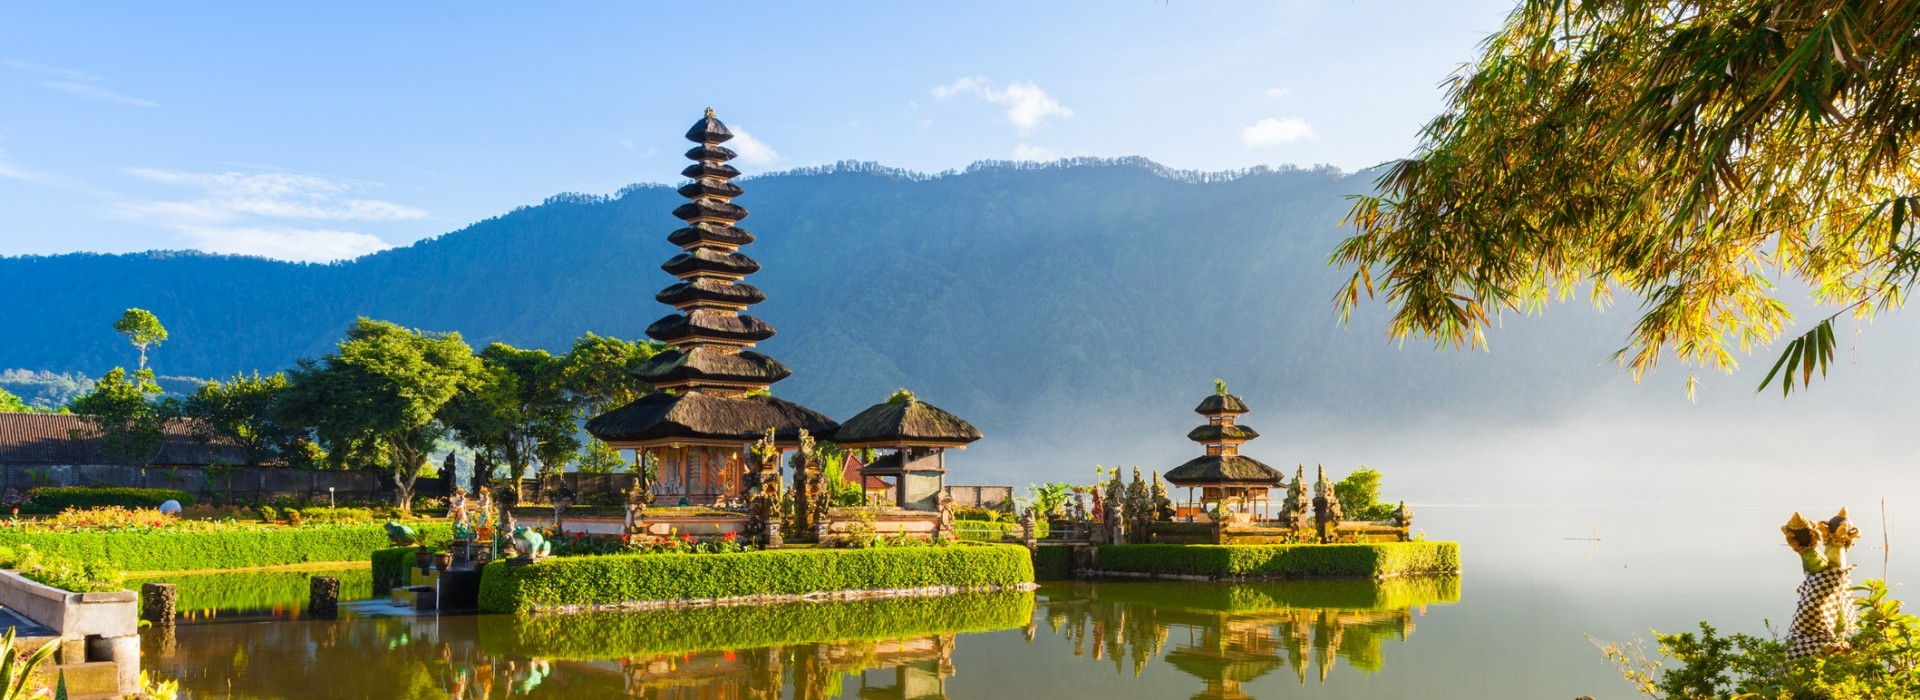 Indonesia Trip 146 Best Indonesia Tours Holiday Packages 2019 2020 Compare